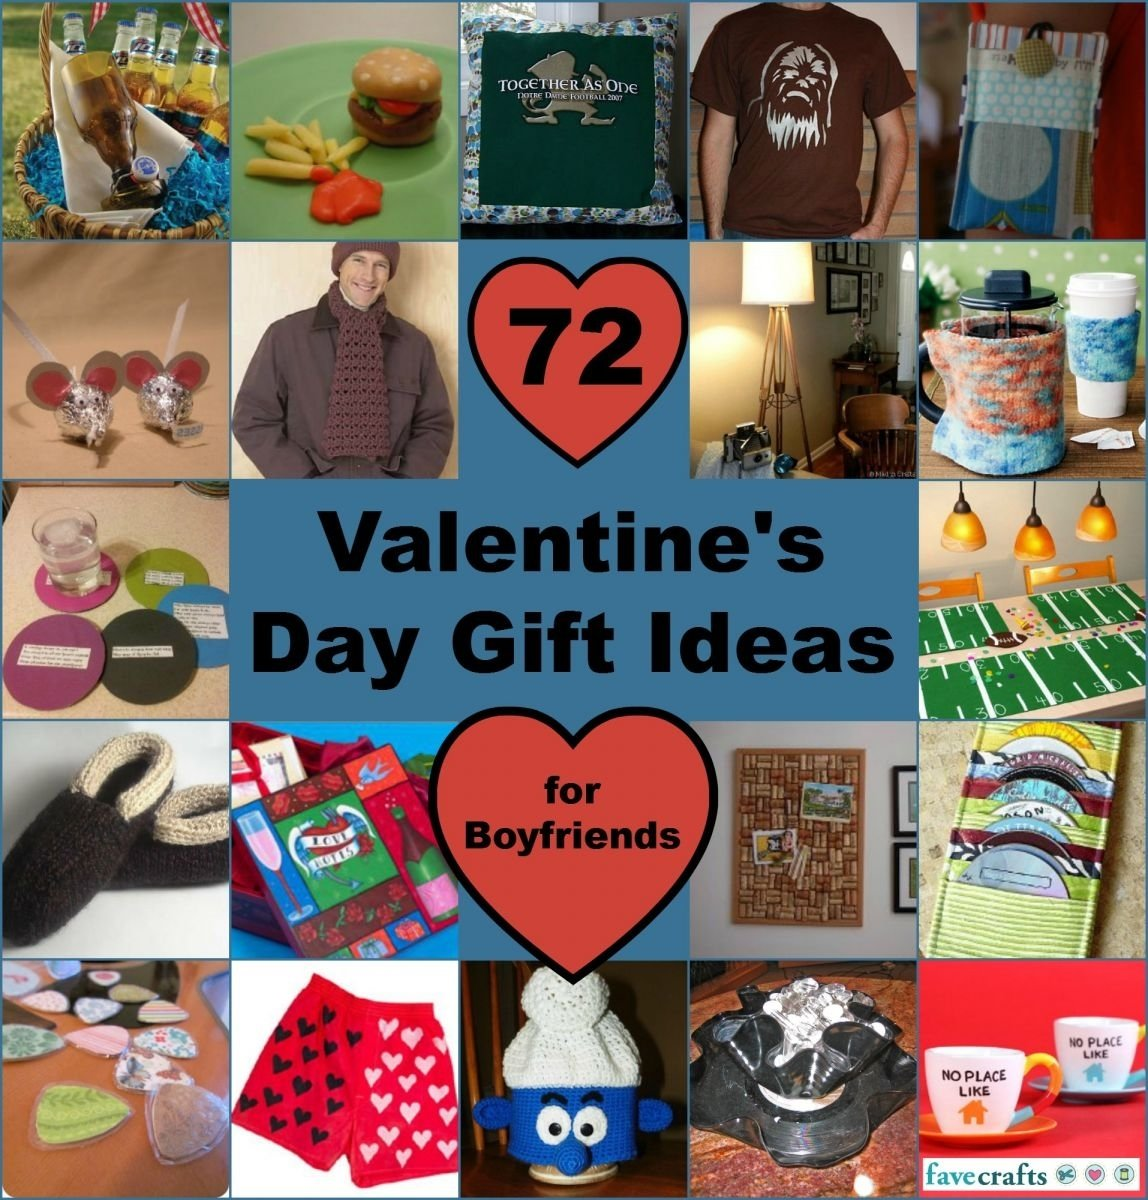 10 Unique Cheap Valentines Day Ideas For Boyfriend gift ideas for boyfriend valentines day gift basket ideas for